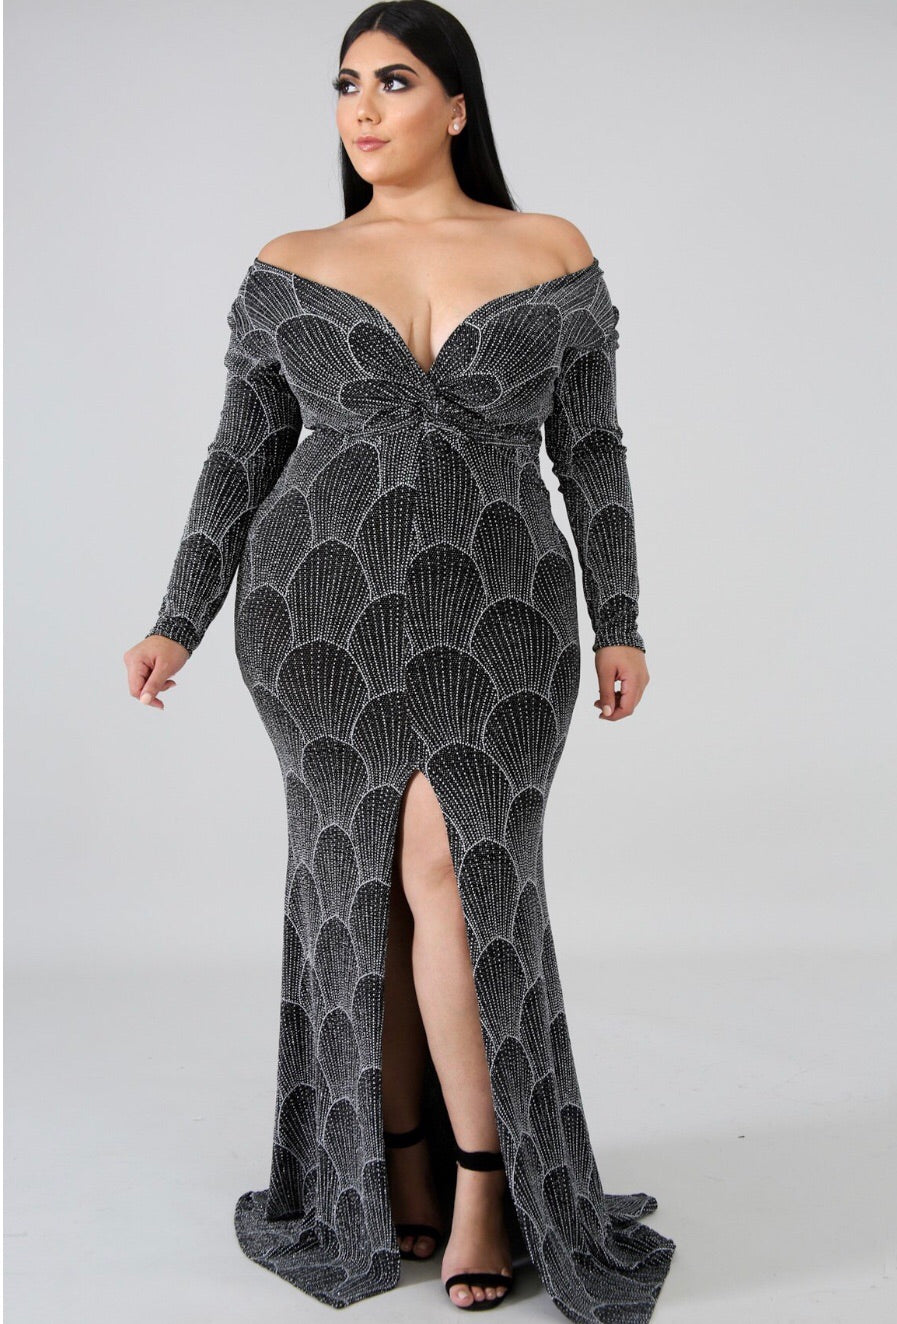 Glitter Long Sleeve Plus Size Dress – Semai House Of fashion